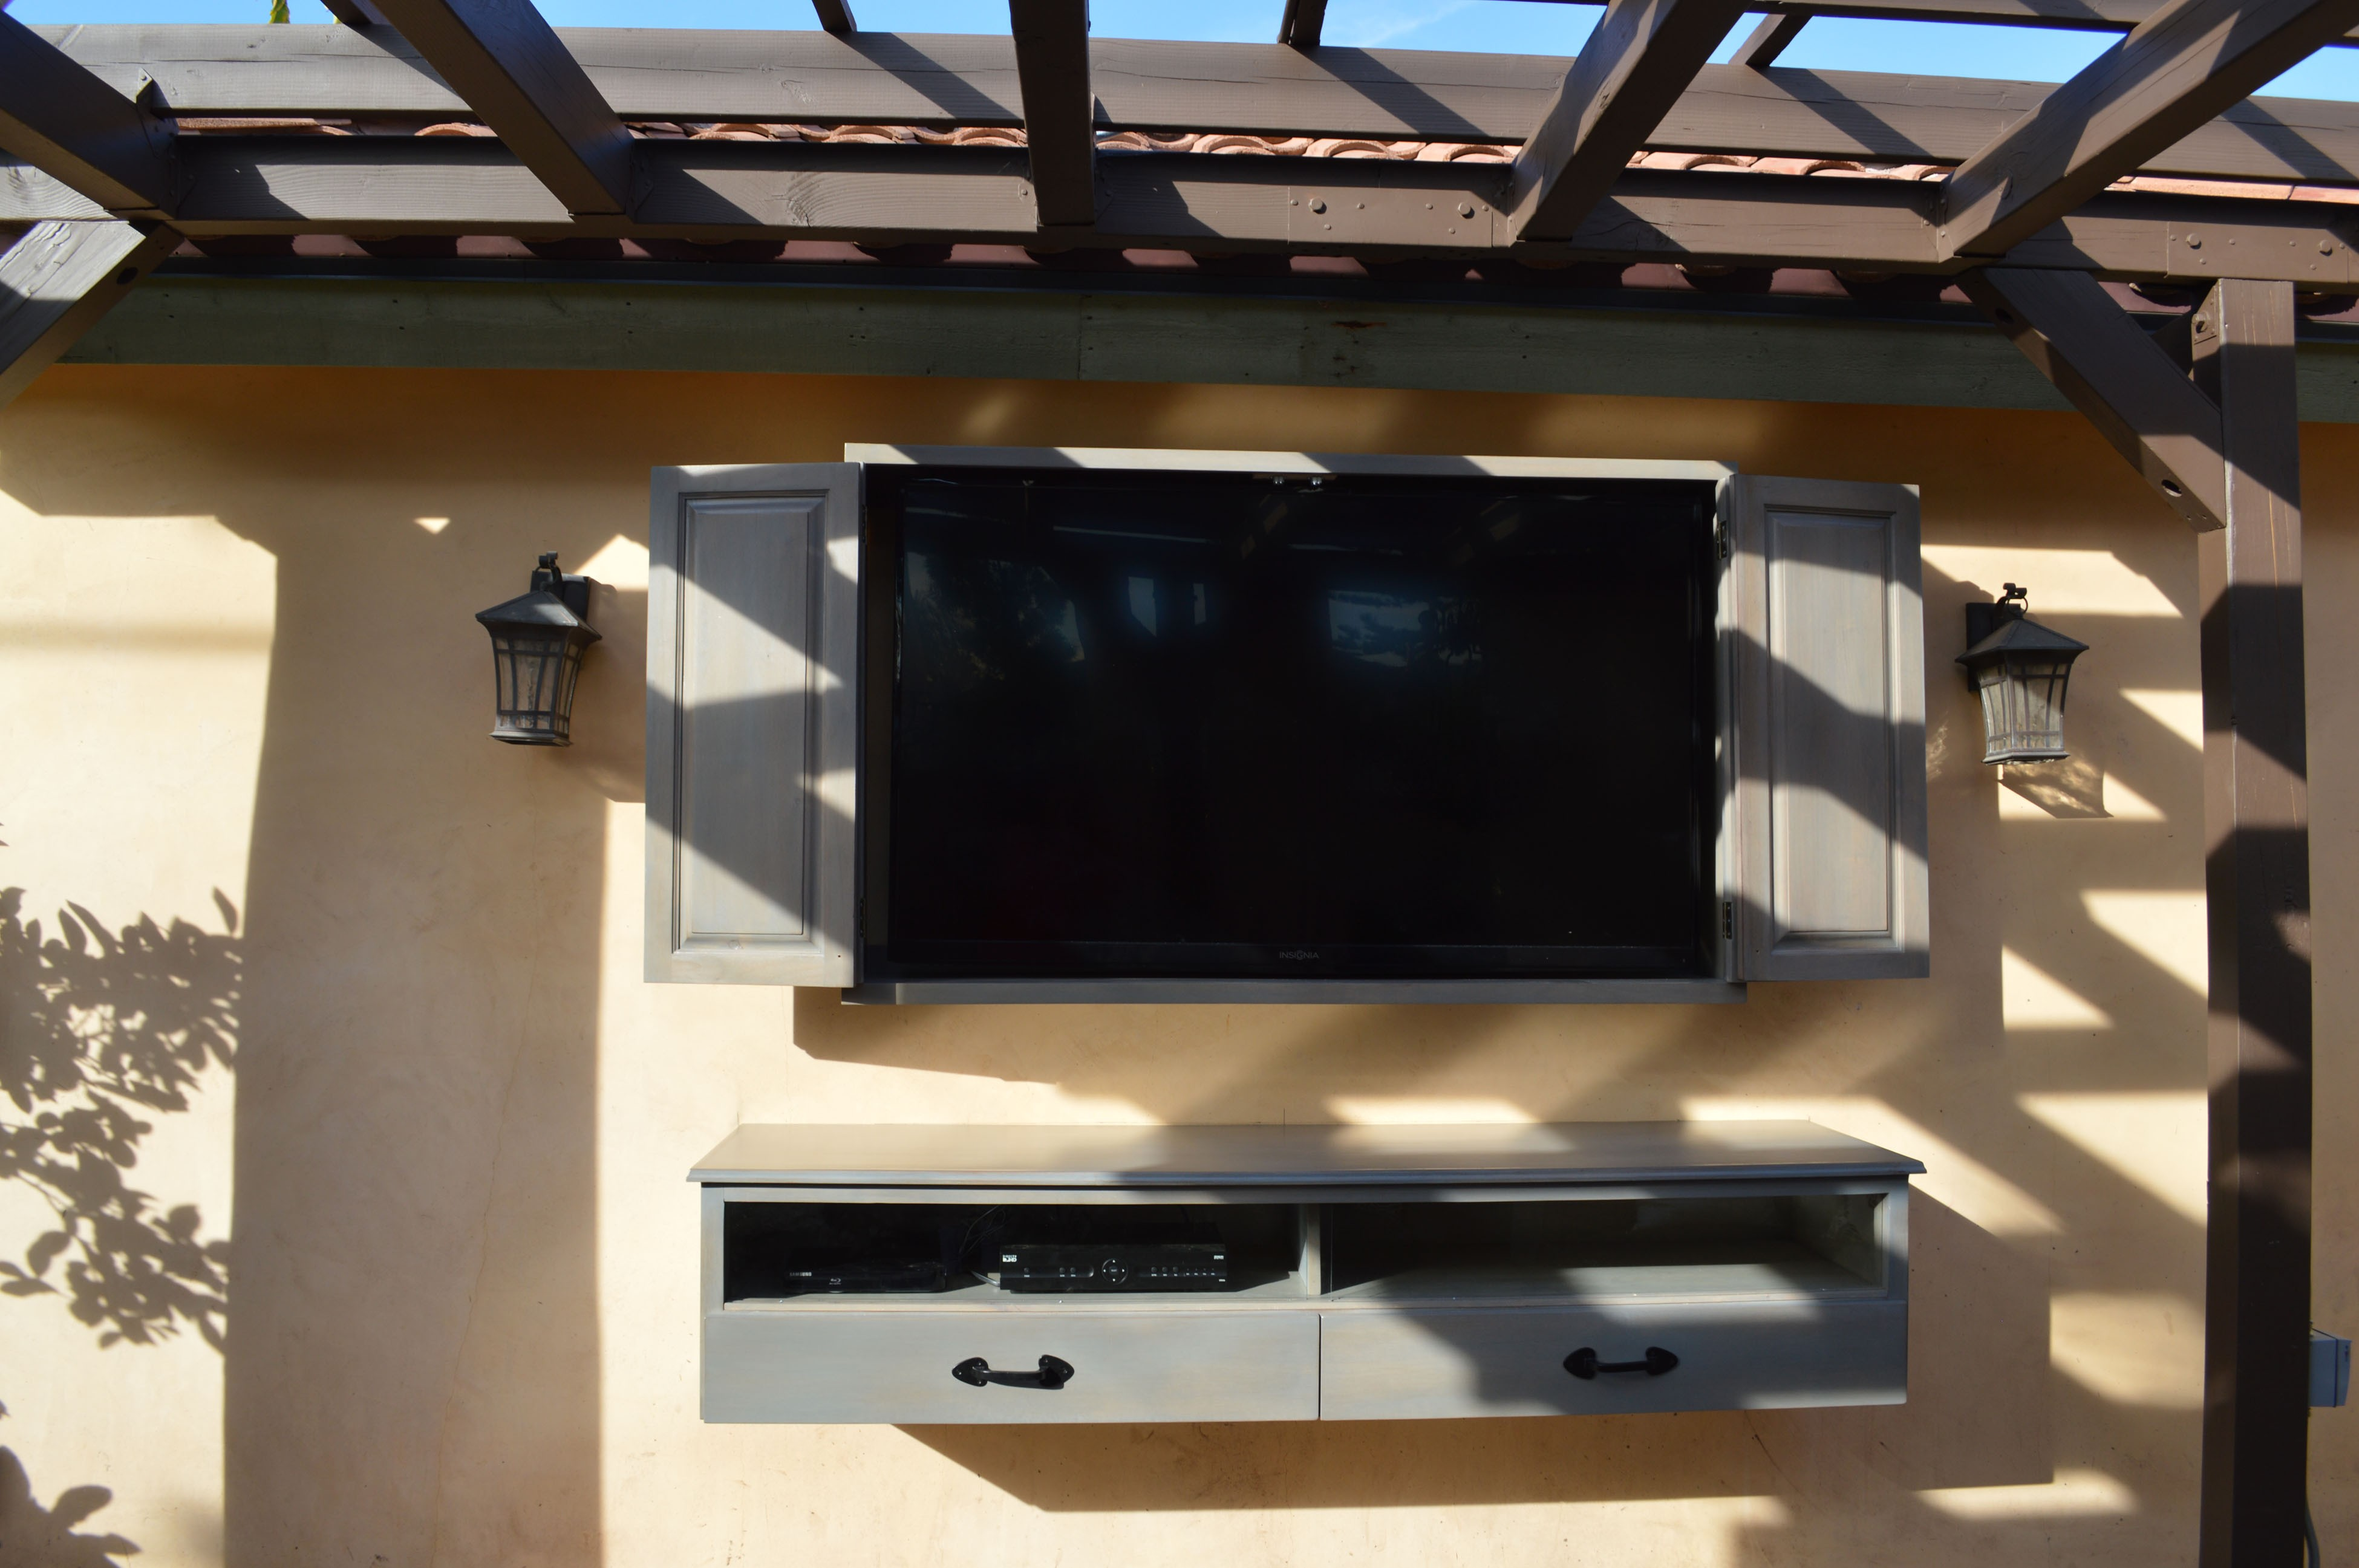 TV mounting outdoors in shade